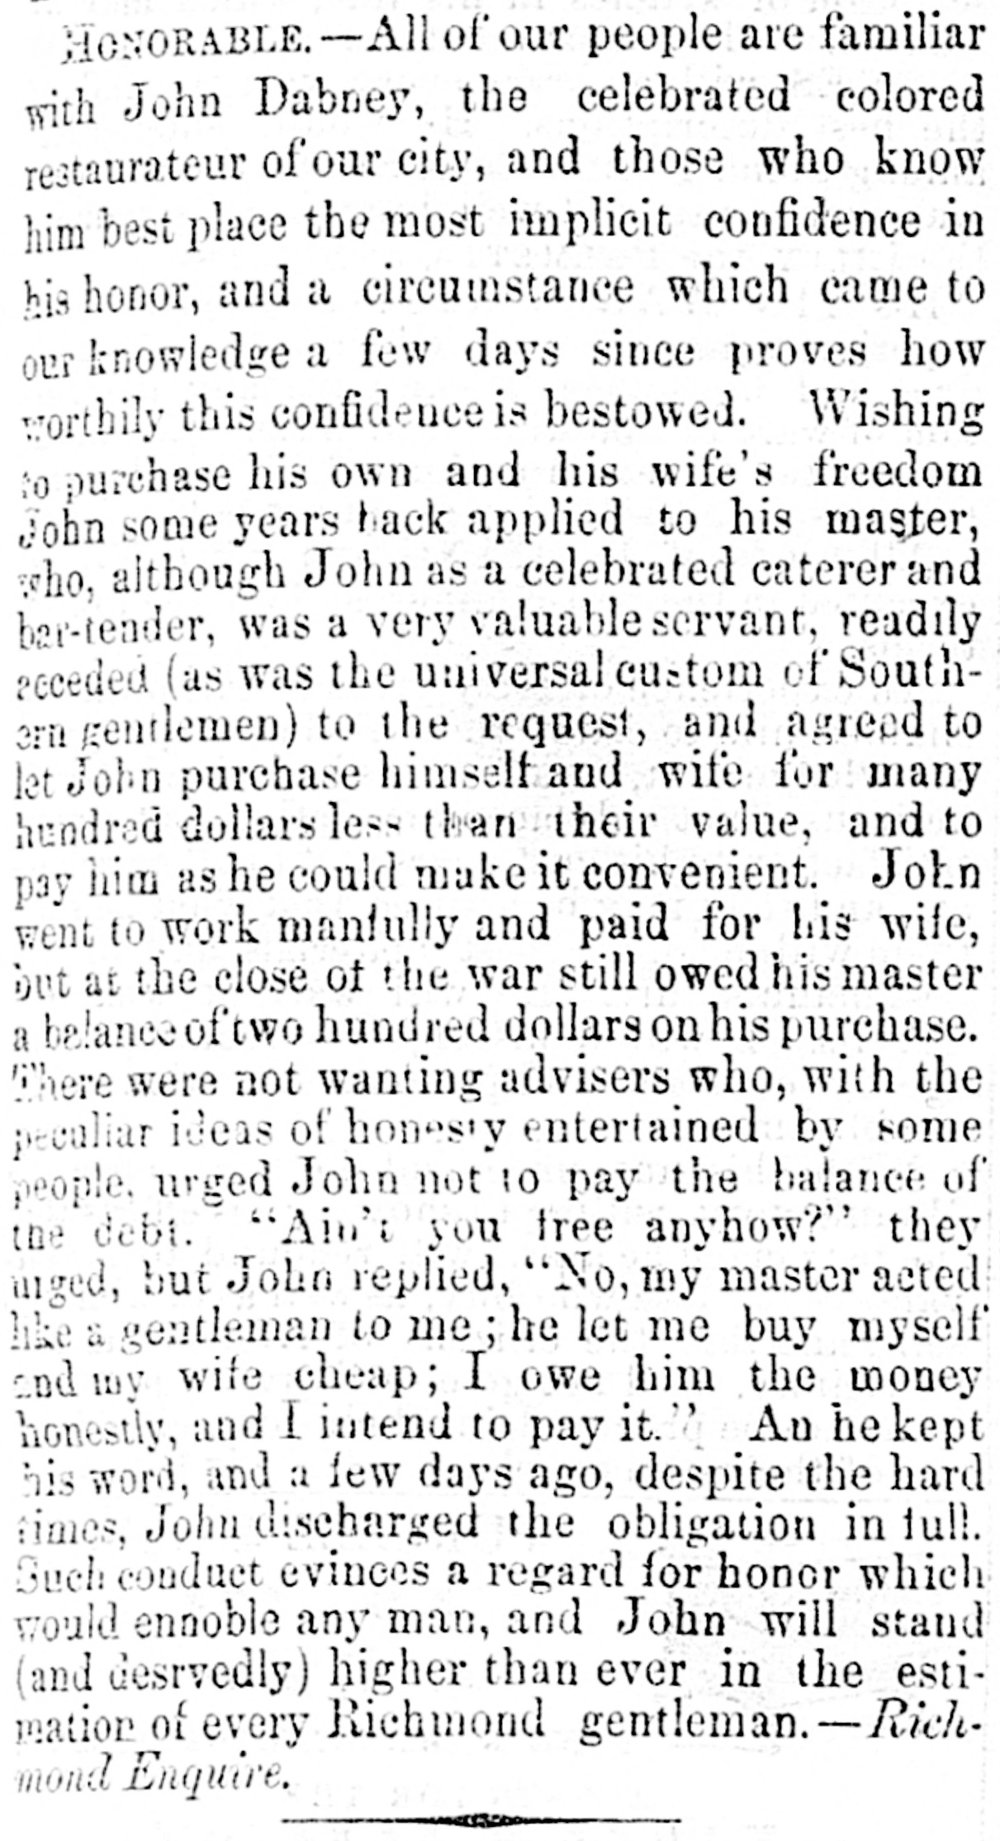 This detail image from the front page of the Alexandria Gazette reflects the excitement generated by Dabney's decision to remit the remainder of his wartime freedom payments to Cora Williamson DeJarnette.  Re-printed from the Richmond Enquirer, a paper whose records from this period have been lost, the story led the paper on September 26, 1866, situated at the top left so that readers would see it first.  (Chronicling America collection of the Library of Congress) Click the image to enlarge.